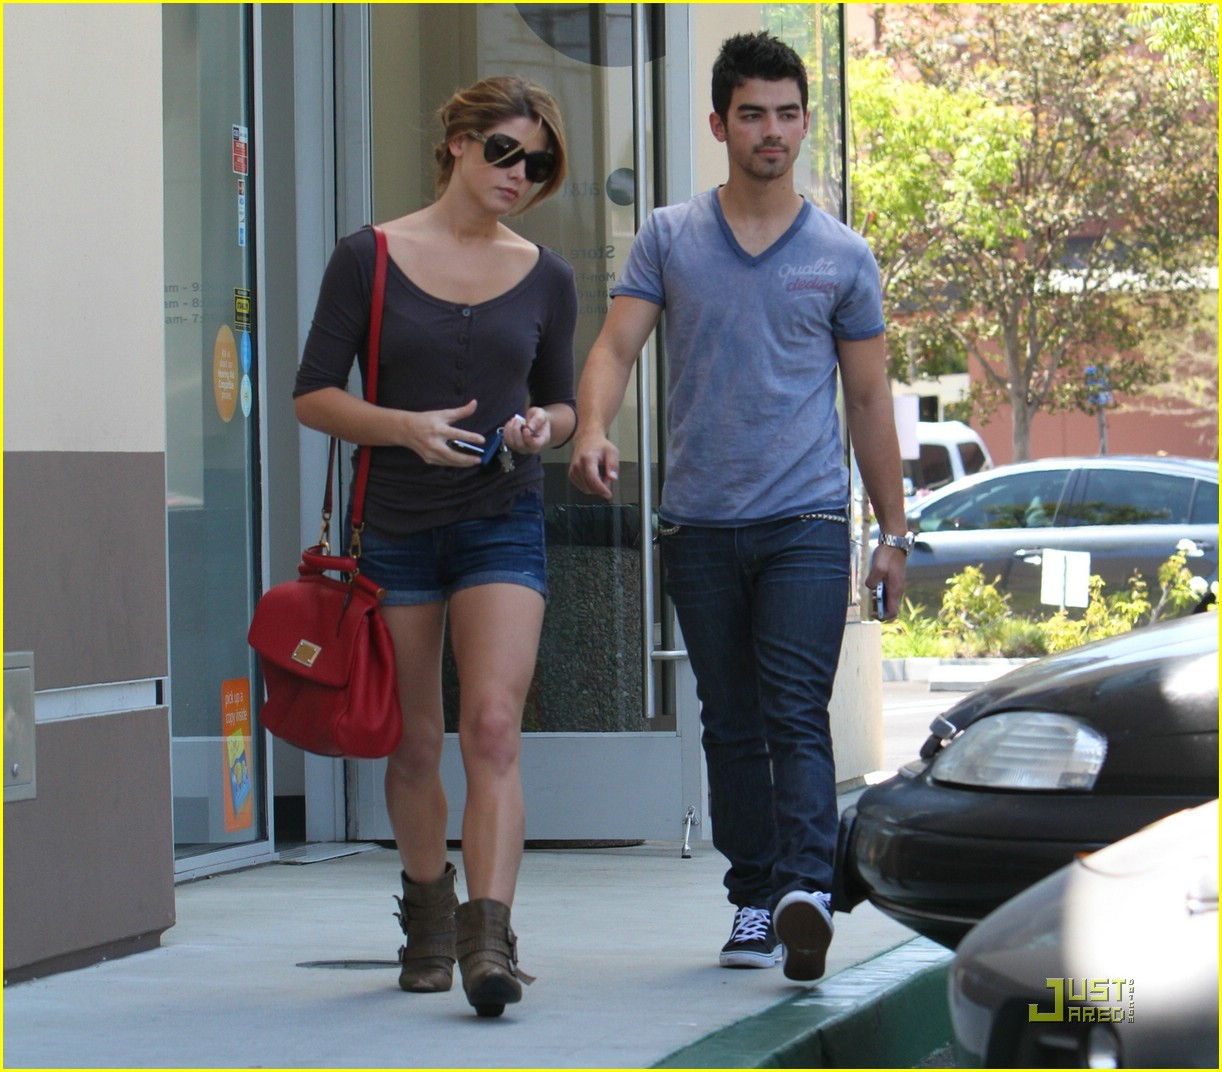 http://2.bp.blogspot.com/_Bk-S5Ypx8U4/TLYeTJr0CXI/AAAAAAAAAEs/kD2J5P8FdnE/s1600/ashley-greene-joe-jonas-coffee-01.jpg